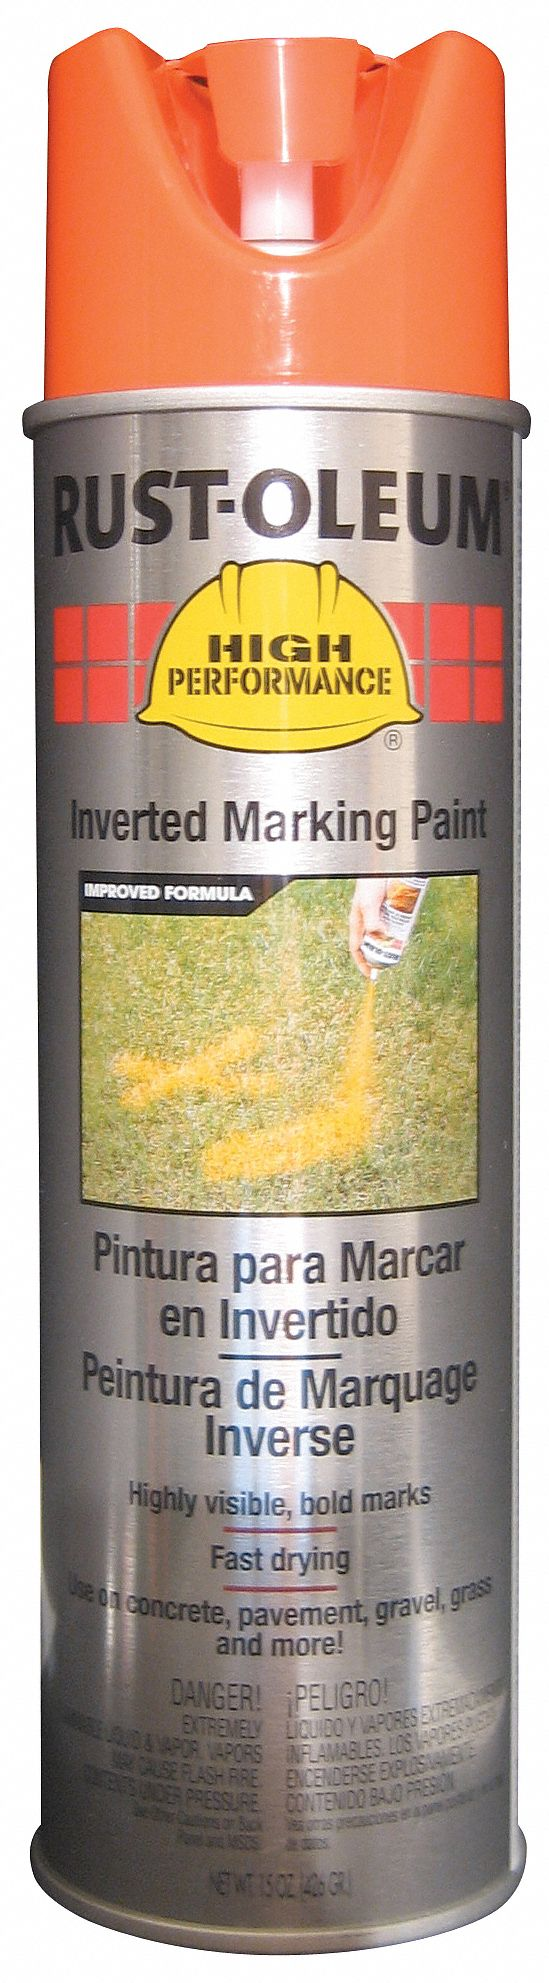 Solvent-Base Inverted Marking Paint, Fluorescent Orange, 15 oz